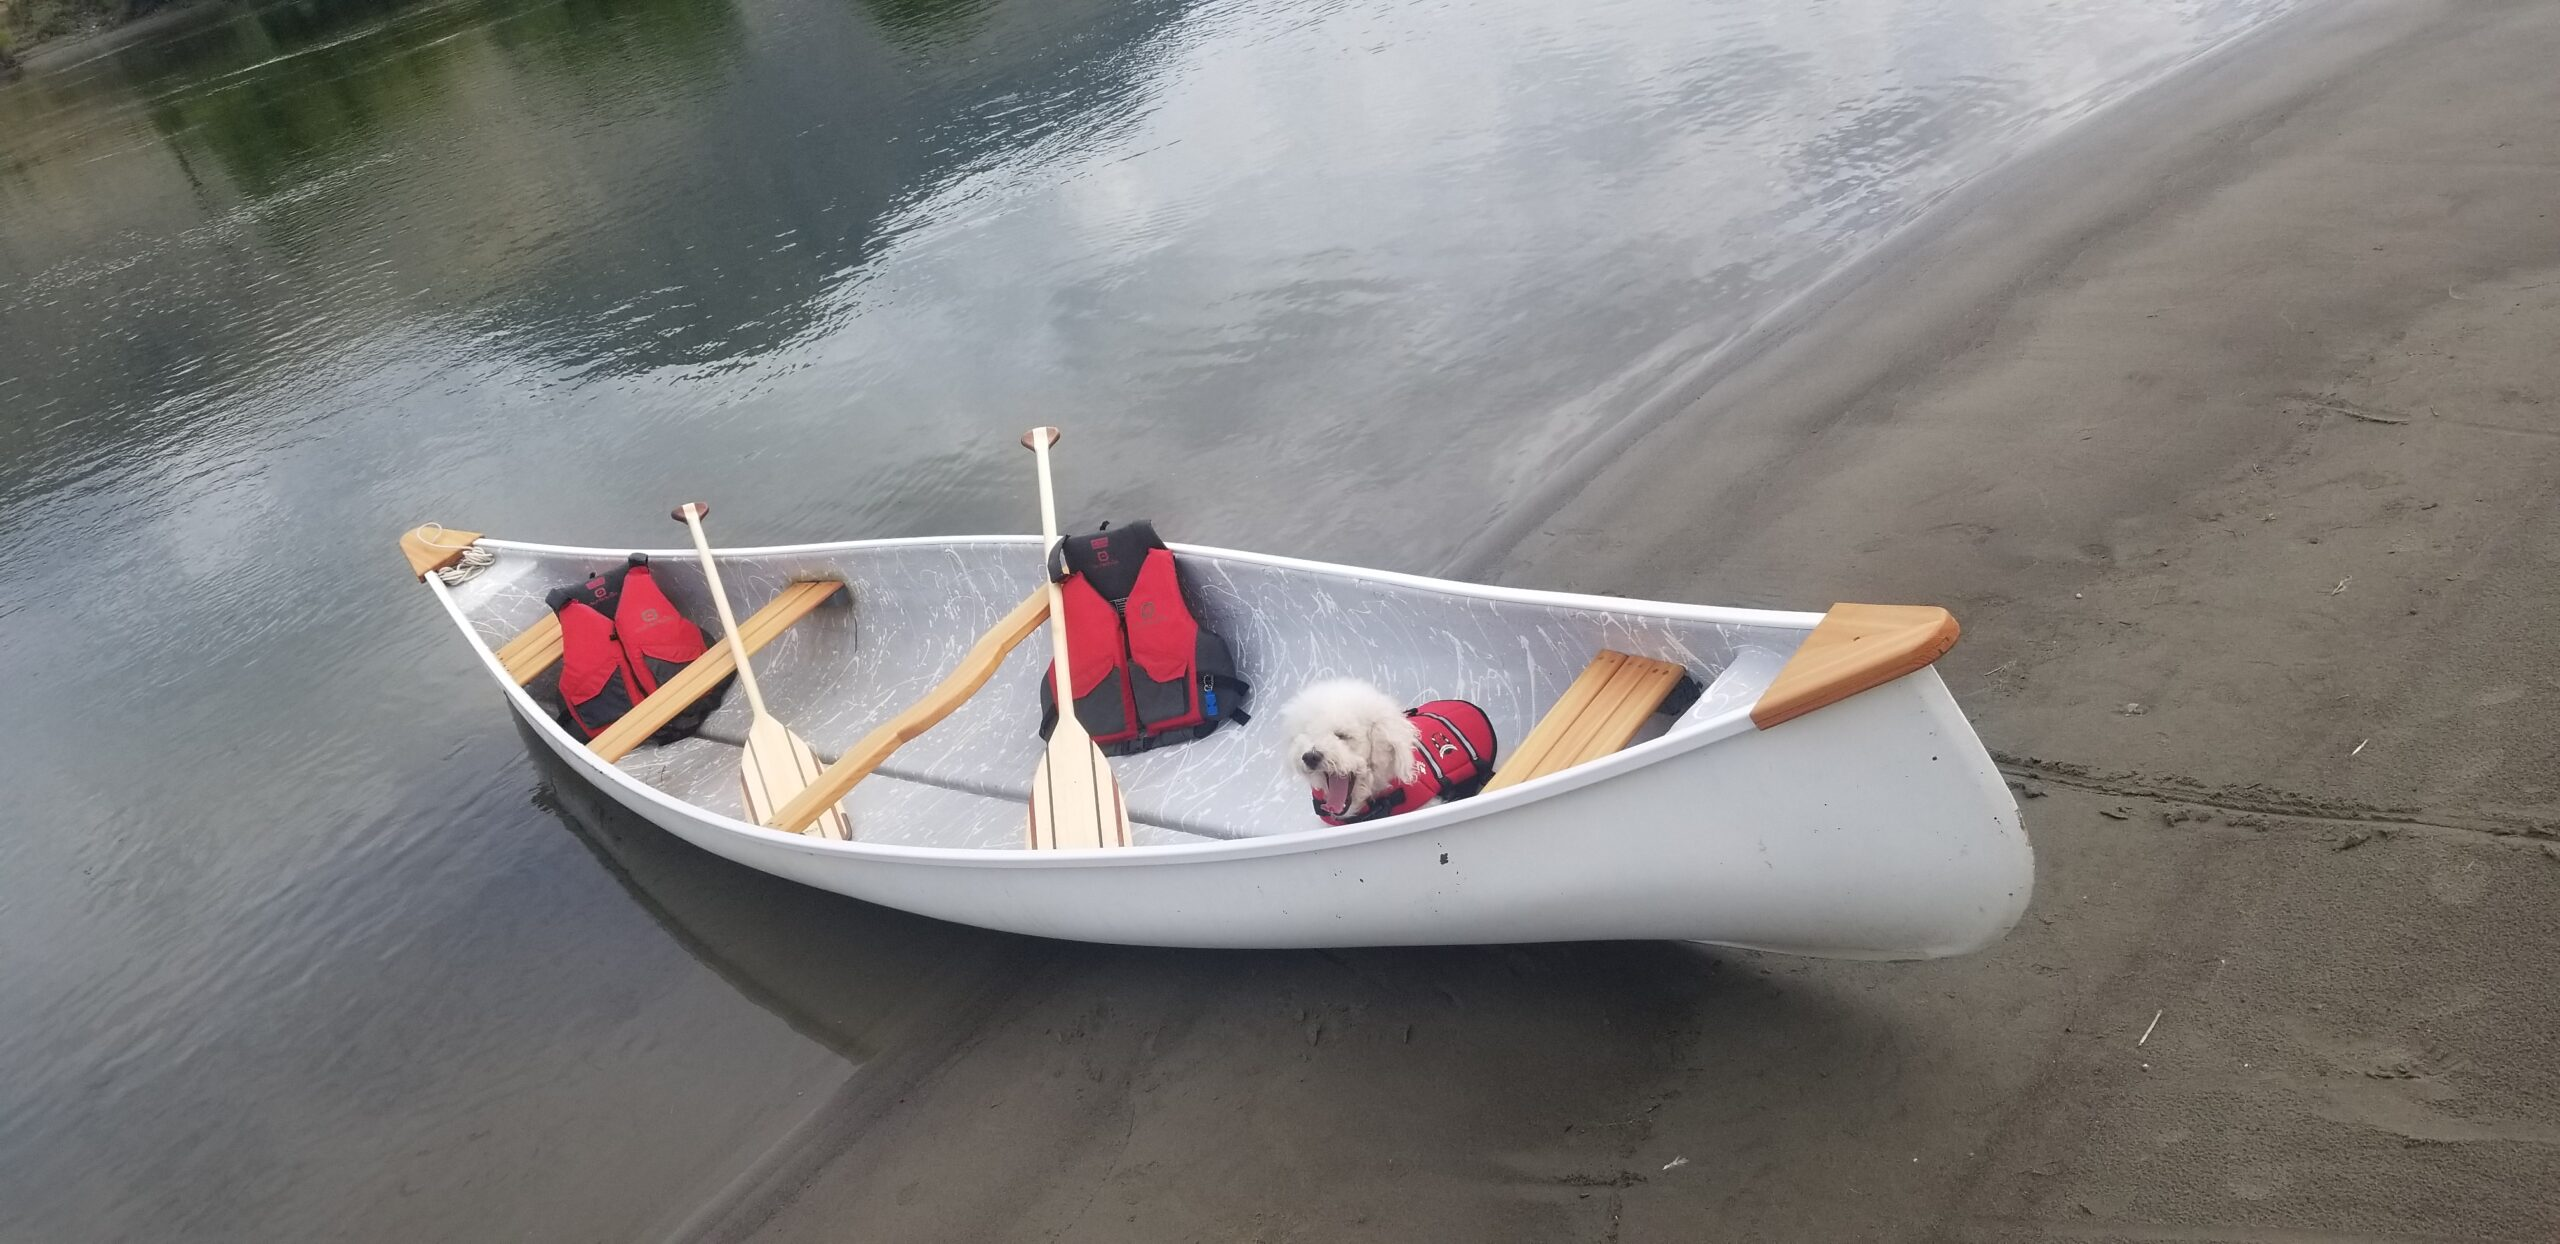 a dog in a canoe for rent by the beach